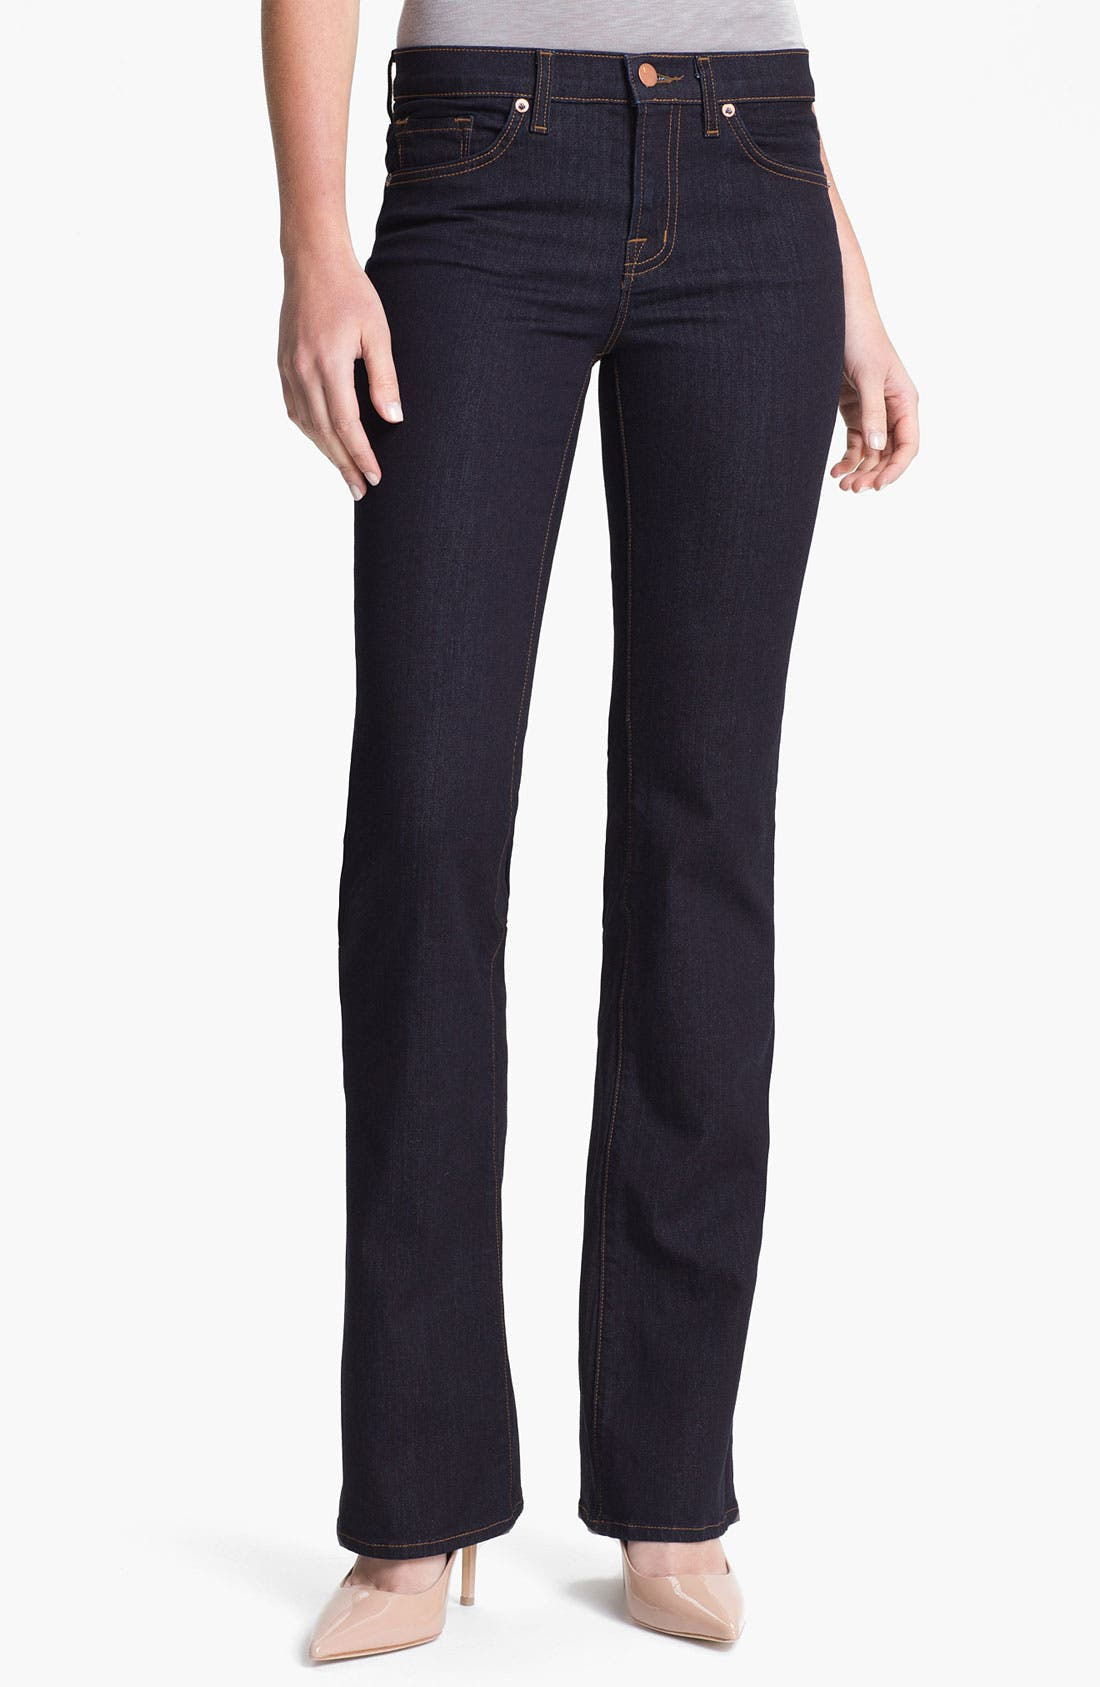 Alternate Image 1 Selected - J Brand Slim Bootcut Stretch Jeans (Starless Wash)